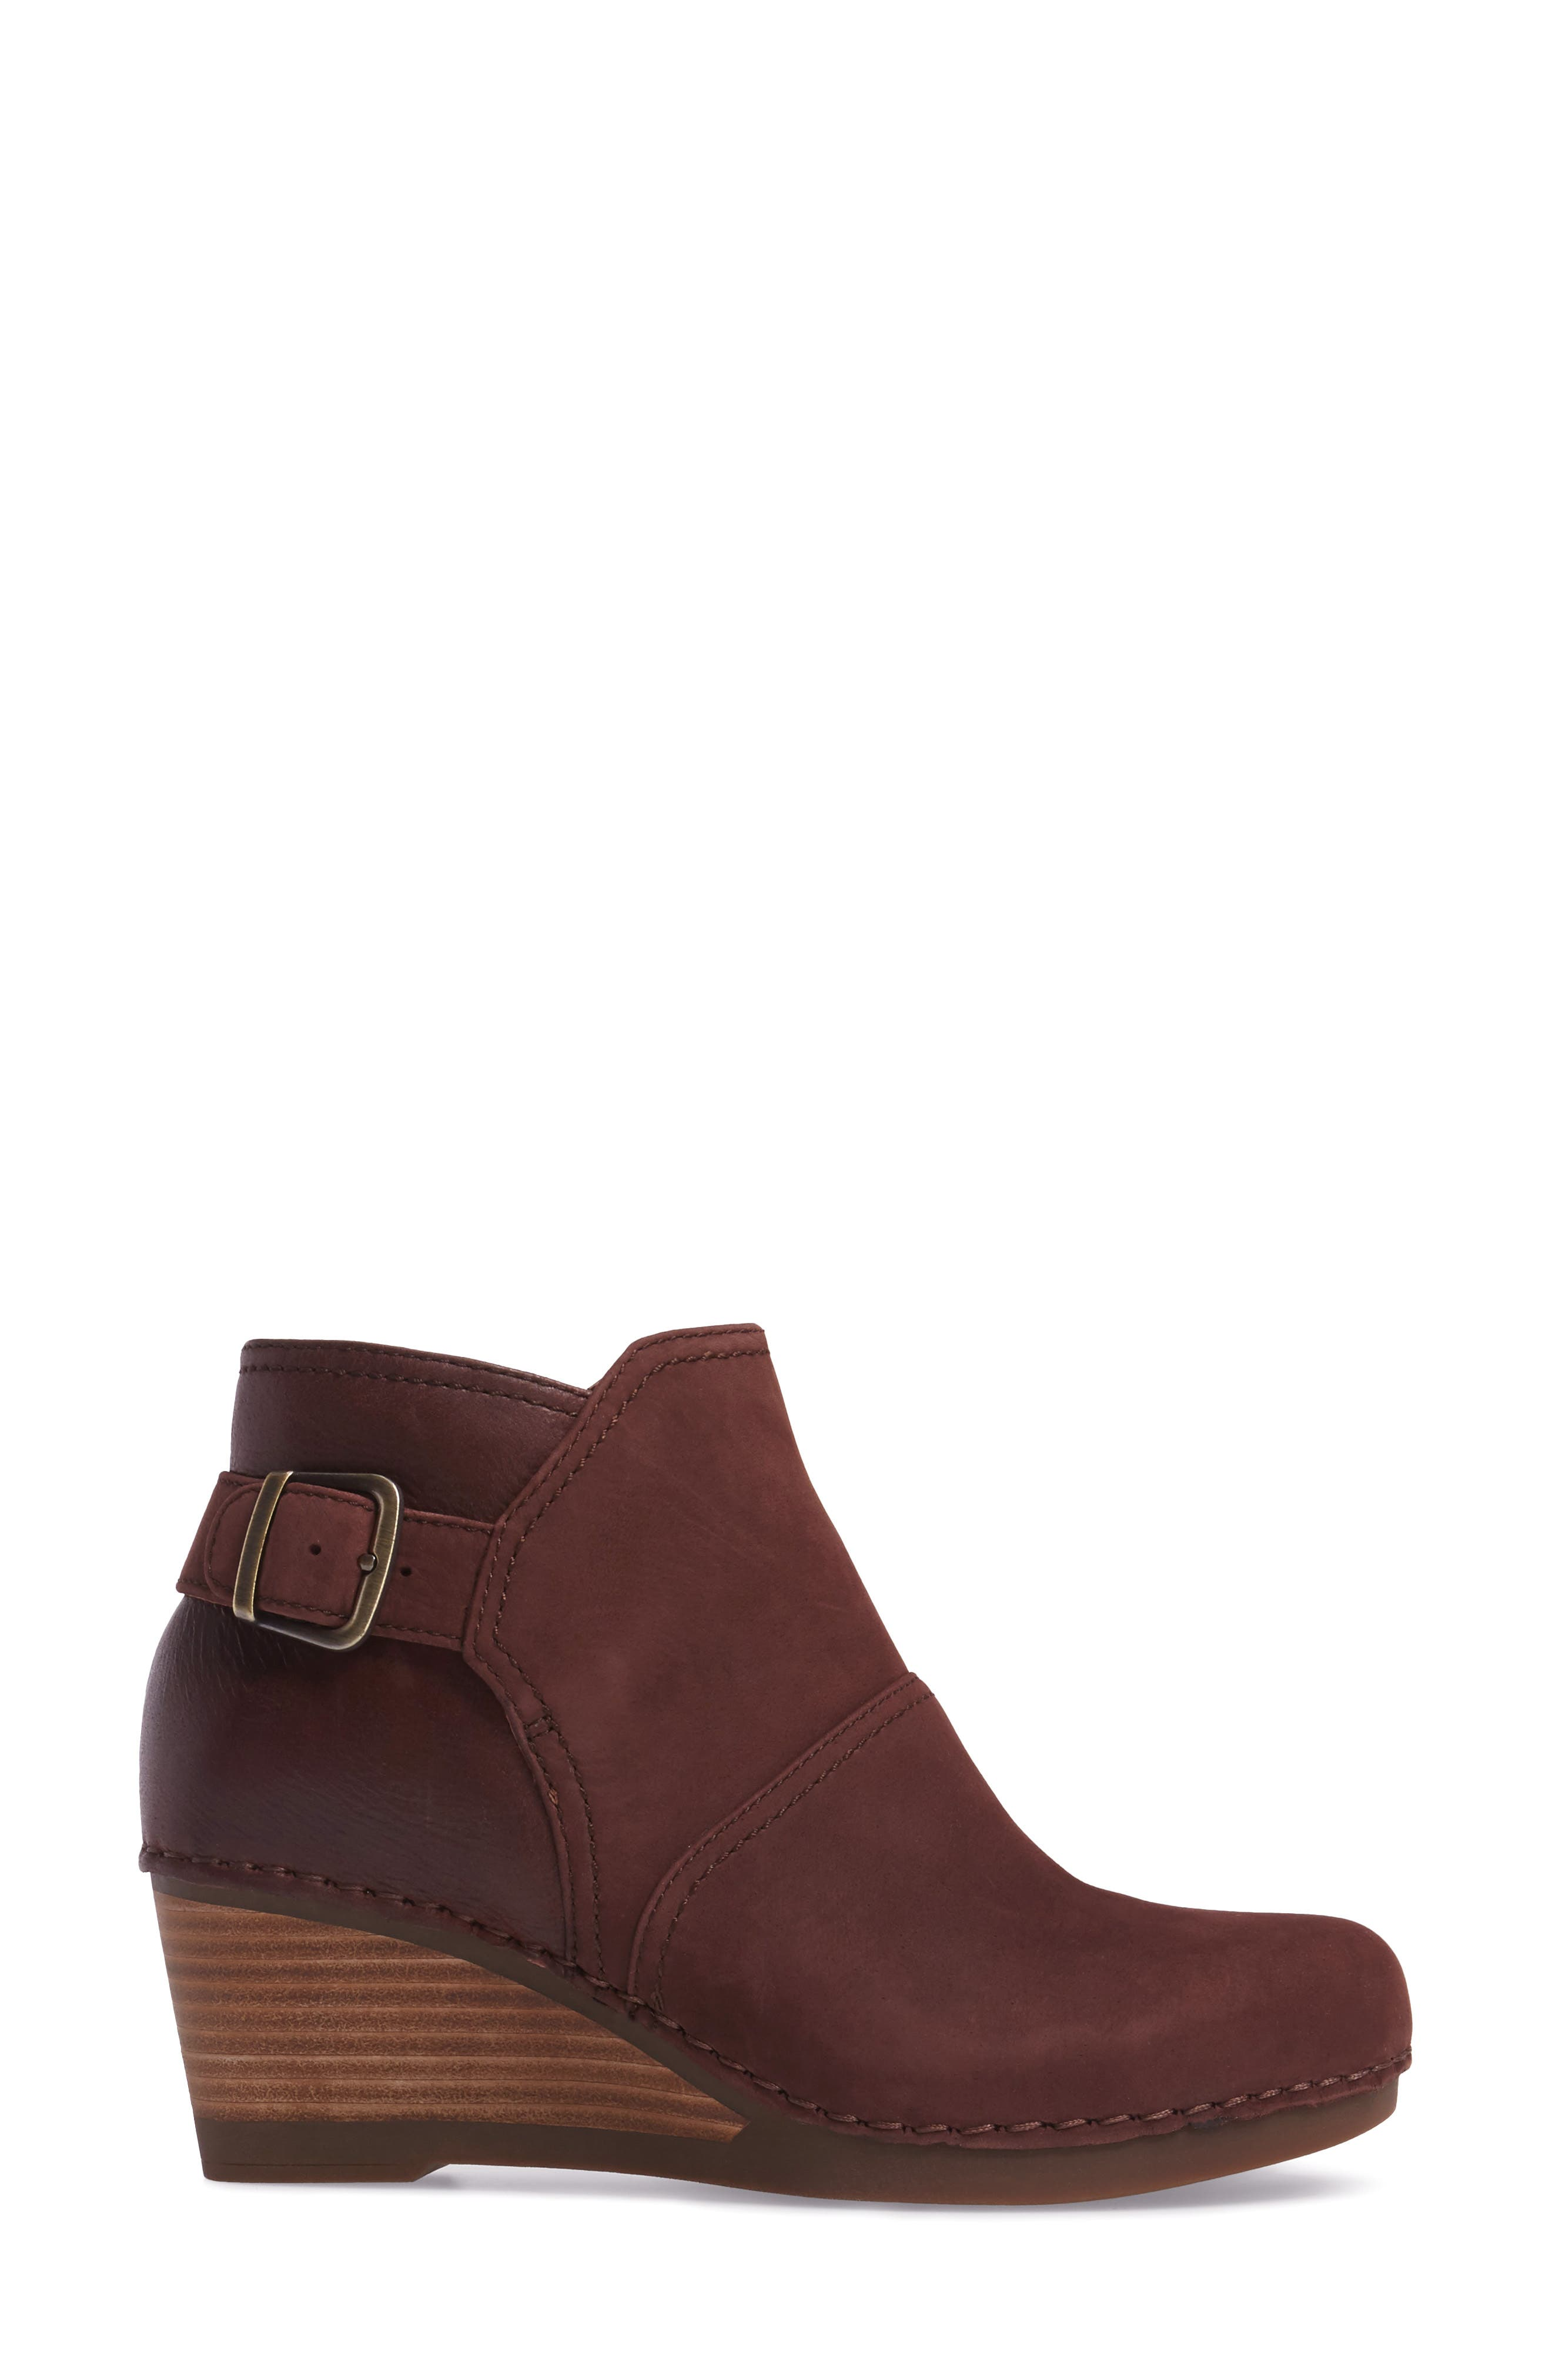 Alternate Image 3  - Dansko 'Shirley' Wedge Bootie (Women)